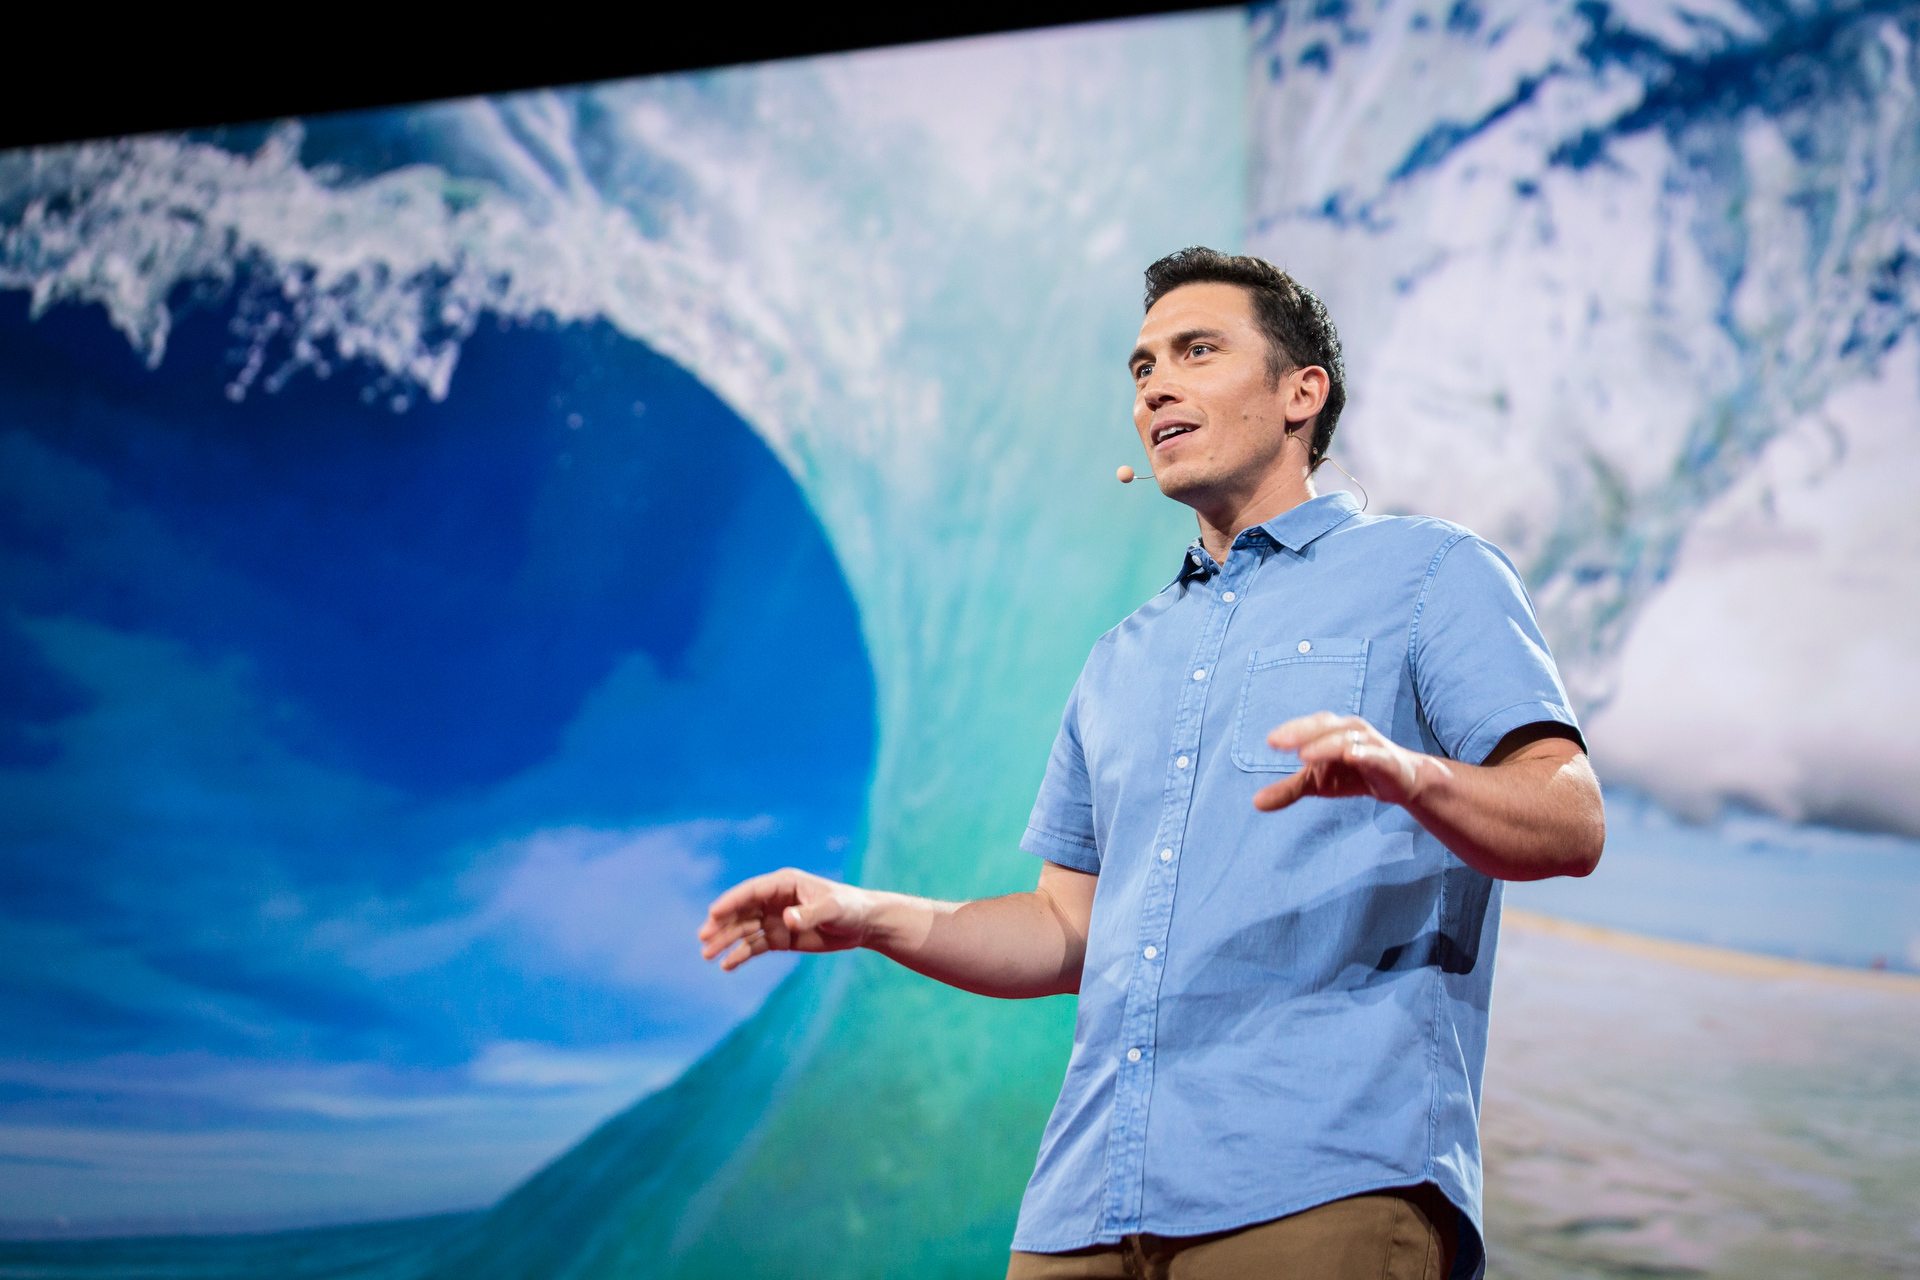 Chris Burkard made the audience chilly with his beautiful images of arctic surfing. Read more about his talk. Photo: Bret Hartman/TED http://blog.ted.com/passion-and-consequence-the-inspiring-talks-in-session-11-of-ted2015/